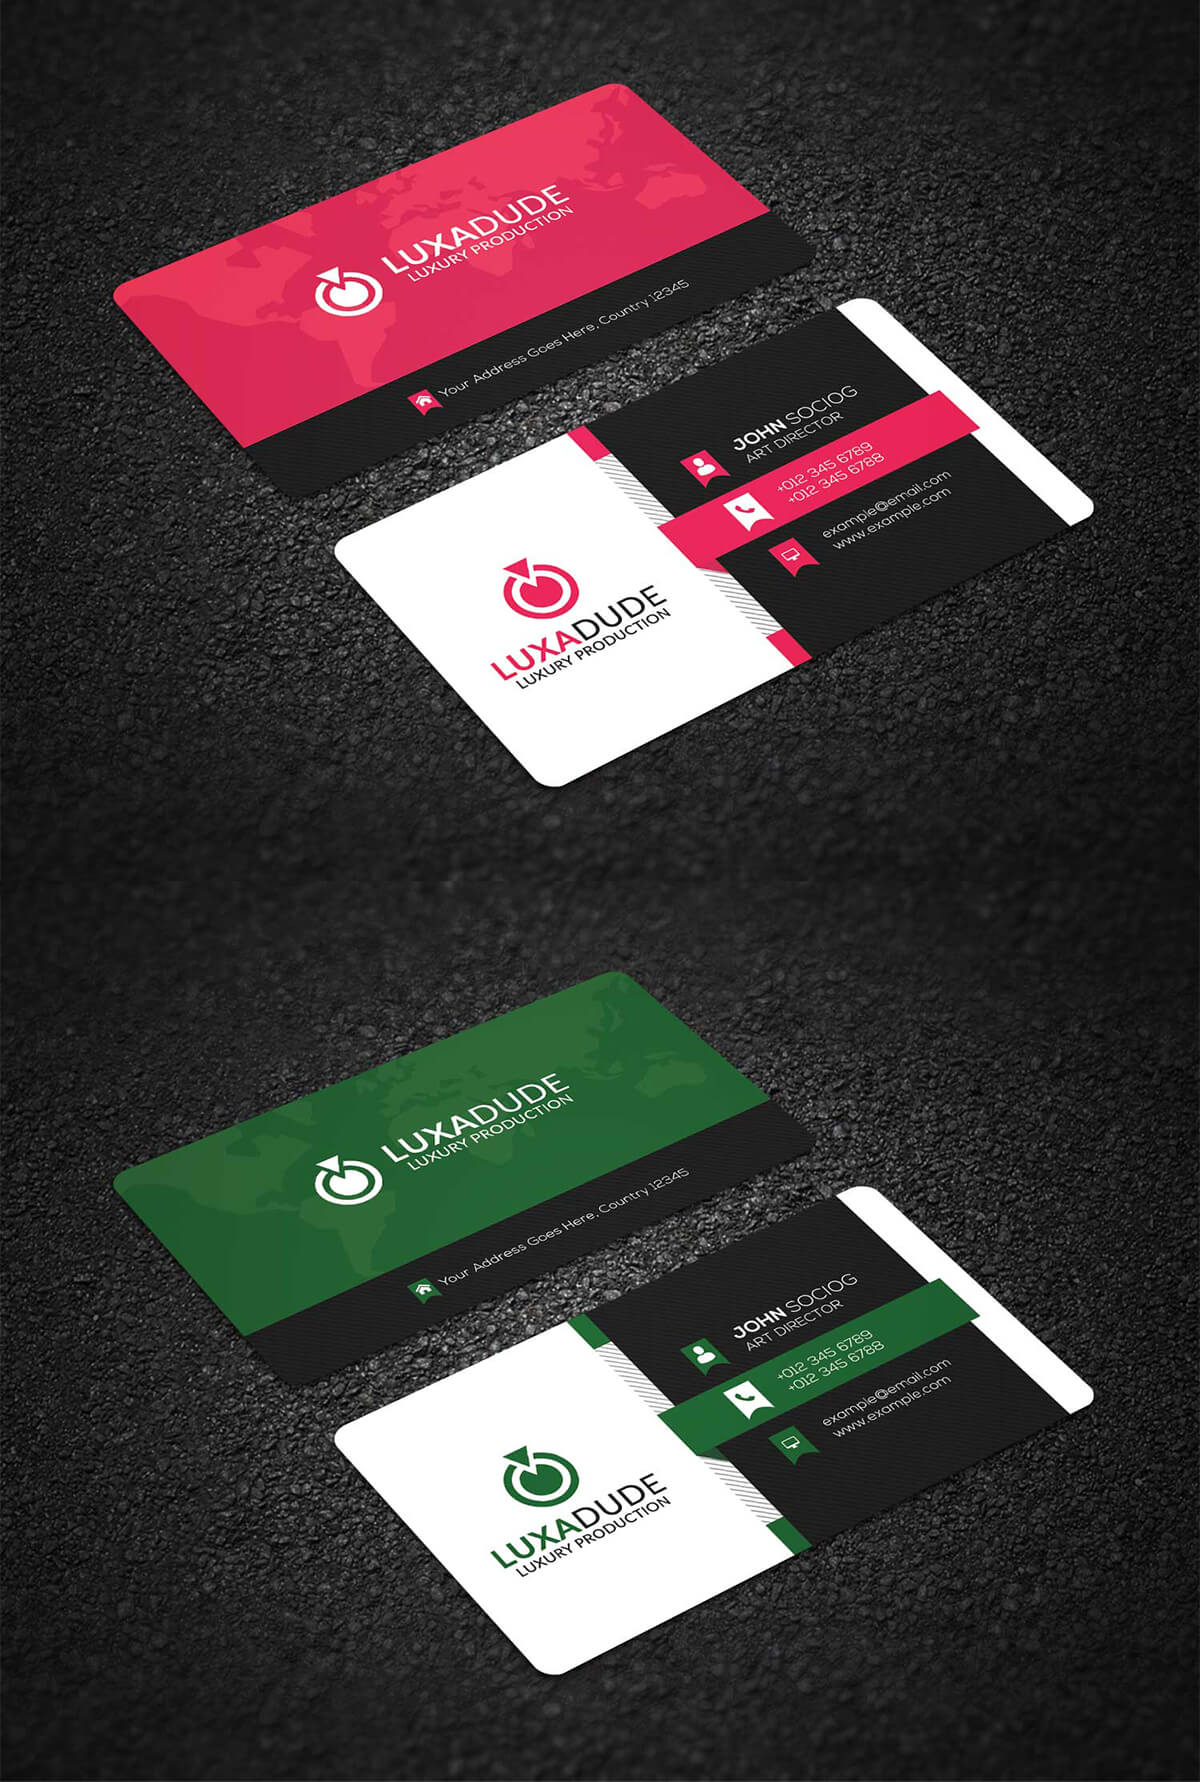 Free corporate business card psd template creativetacos free corporate business card psd template wajeb Gallery